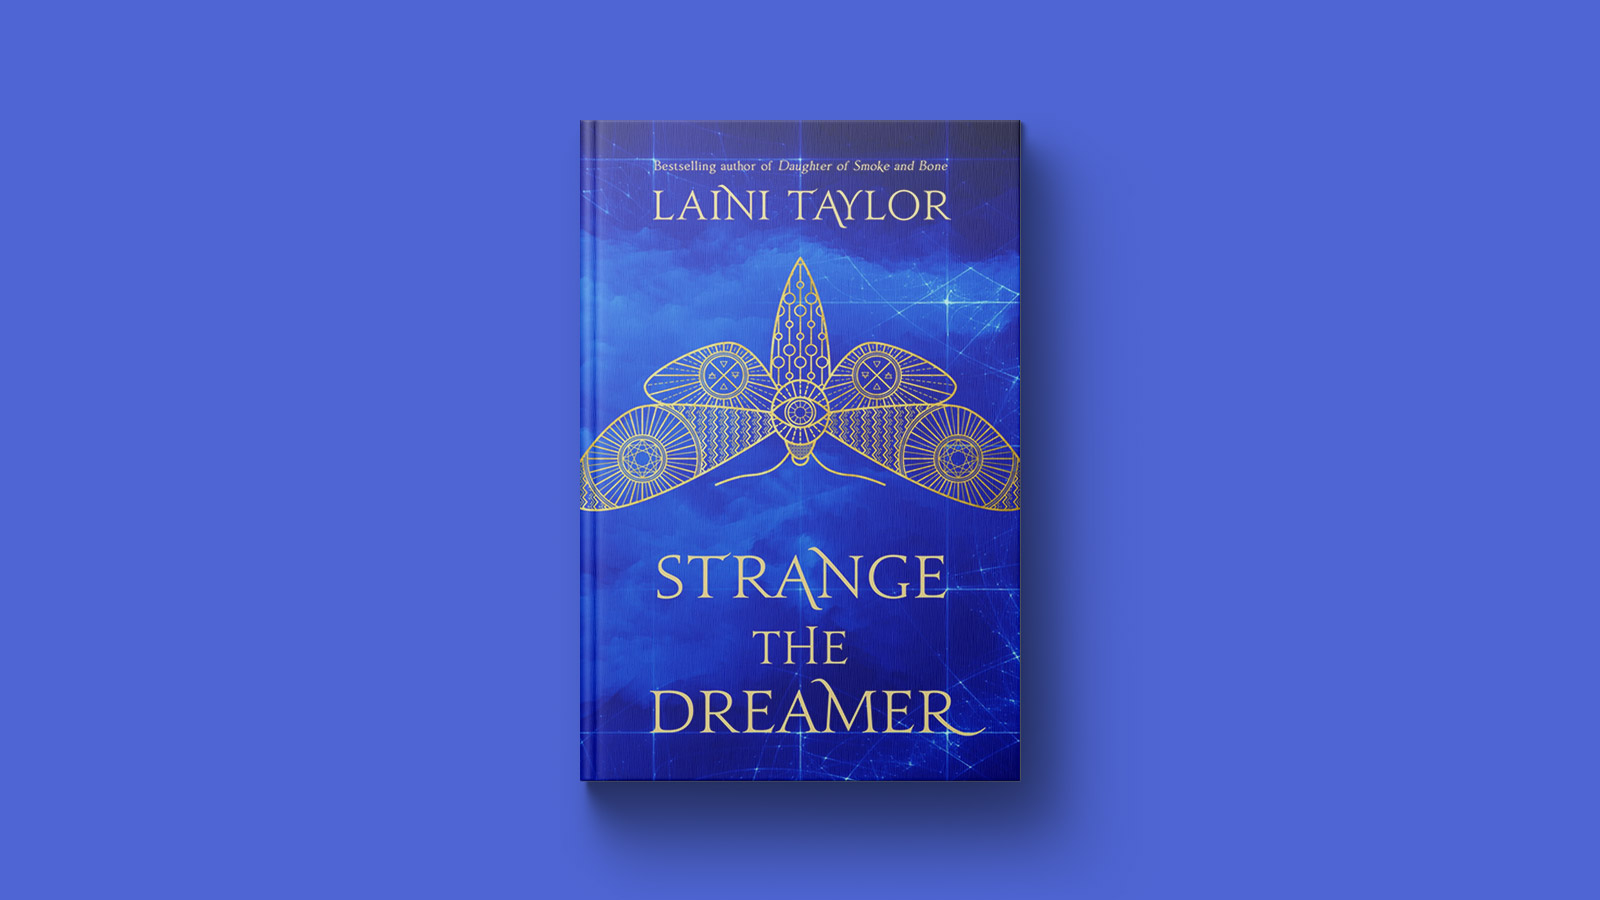 Strange the Dreamer cover illustration by Haelsum